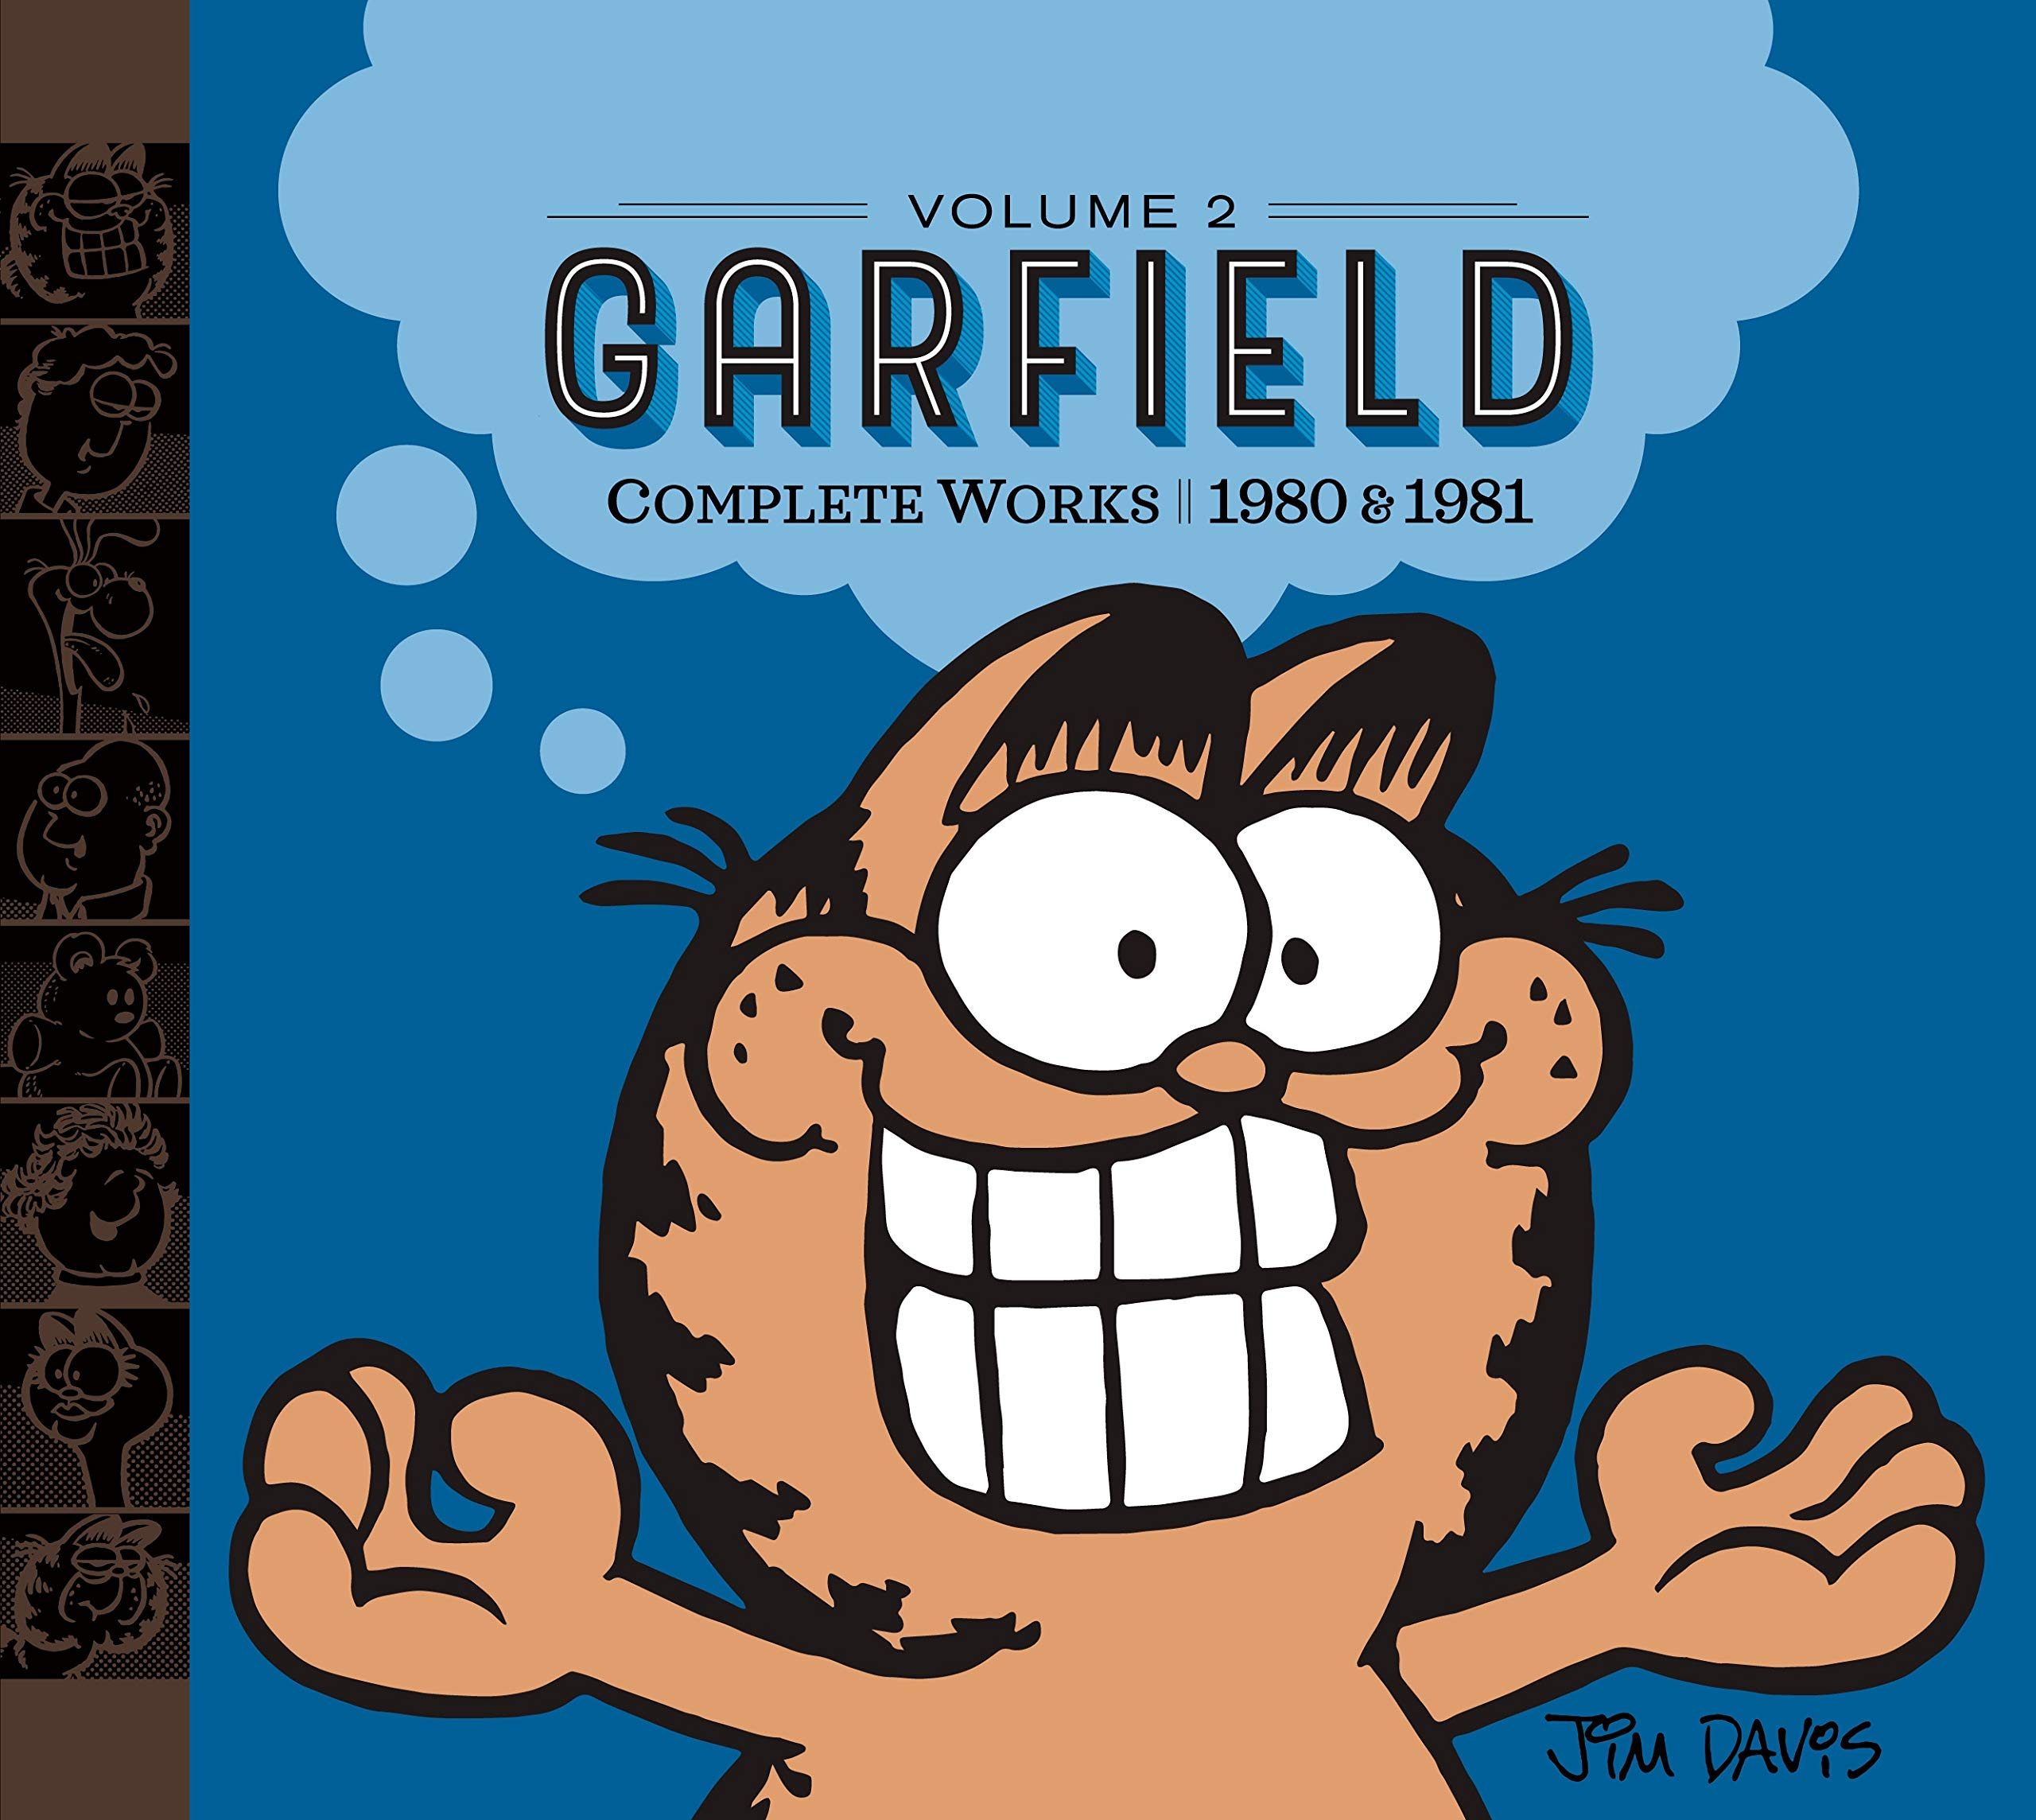 Amazon Com Garfield Complete Works Volume 2 1980 1981 9780425287132 Davis Jim Books